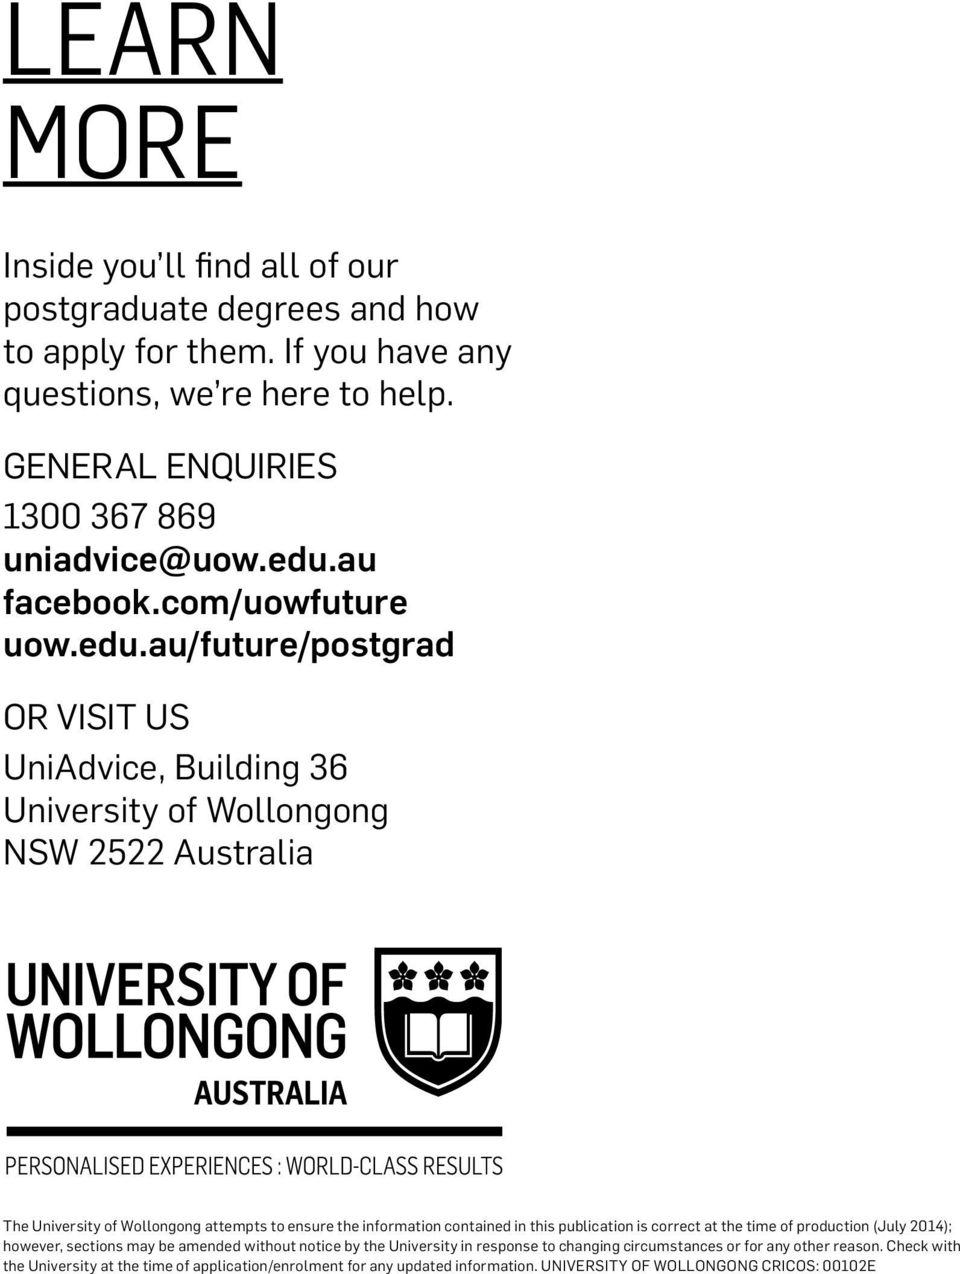 ensure the information contained in this publication is correct at the time of production (July 2014); however, sections may be amended without notice by the University in response